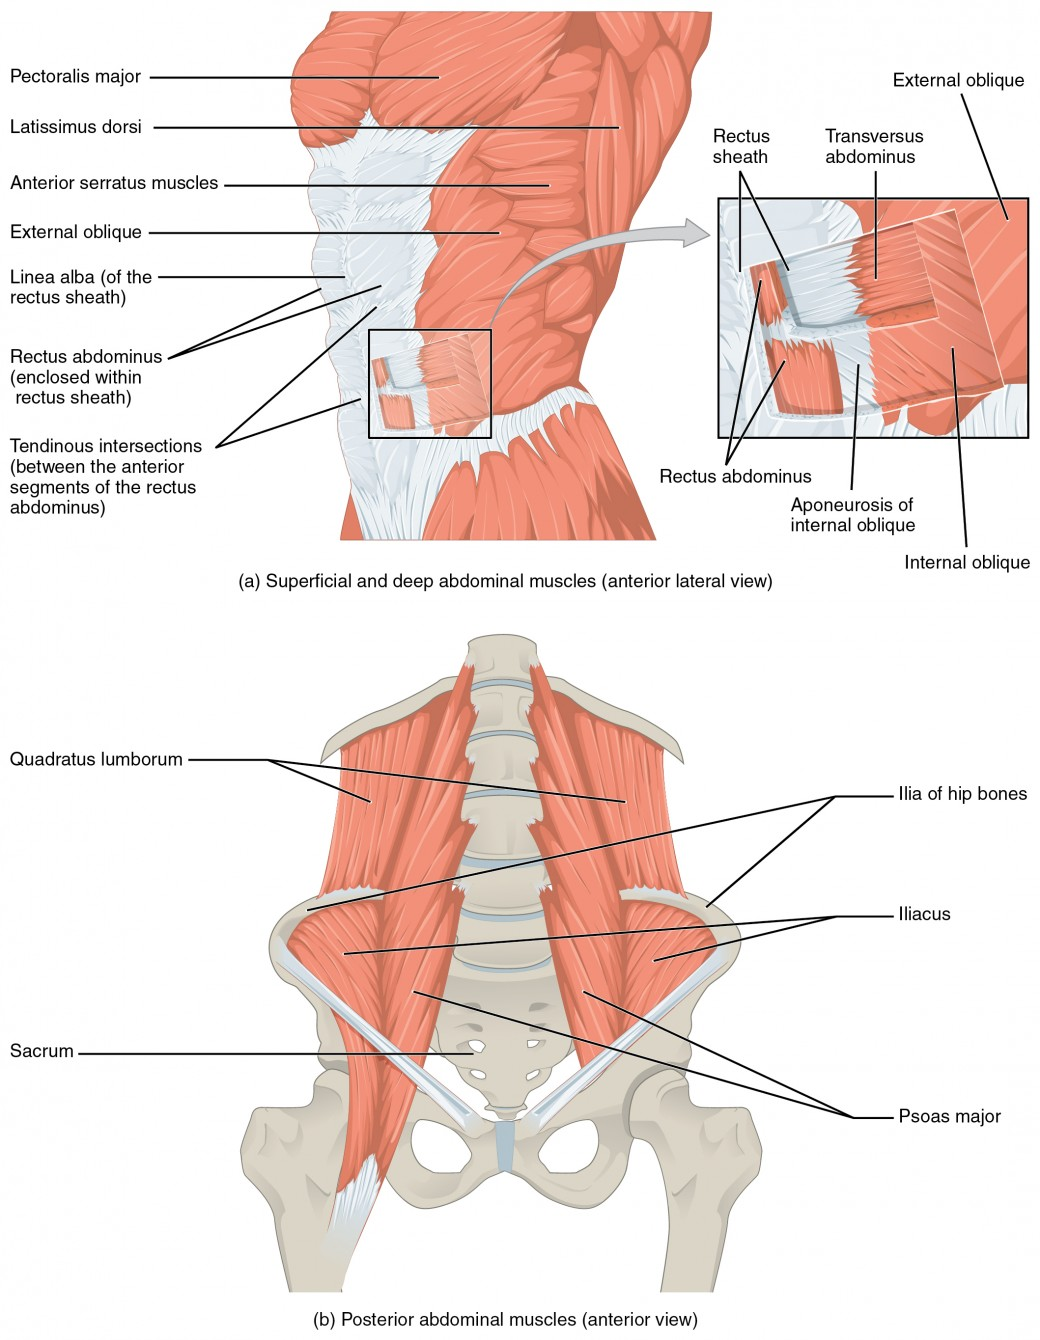 Axial Muscles of the Abdominal Wall and Thorax | Anatomy and Physiology